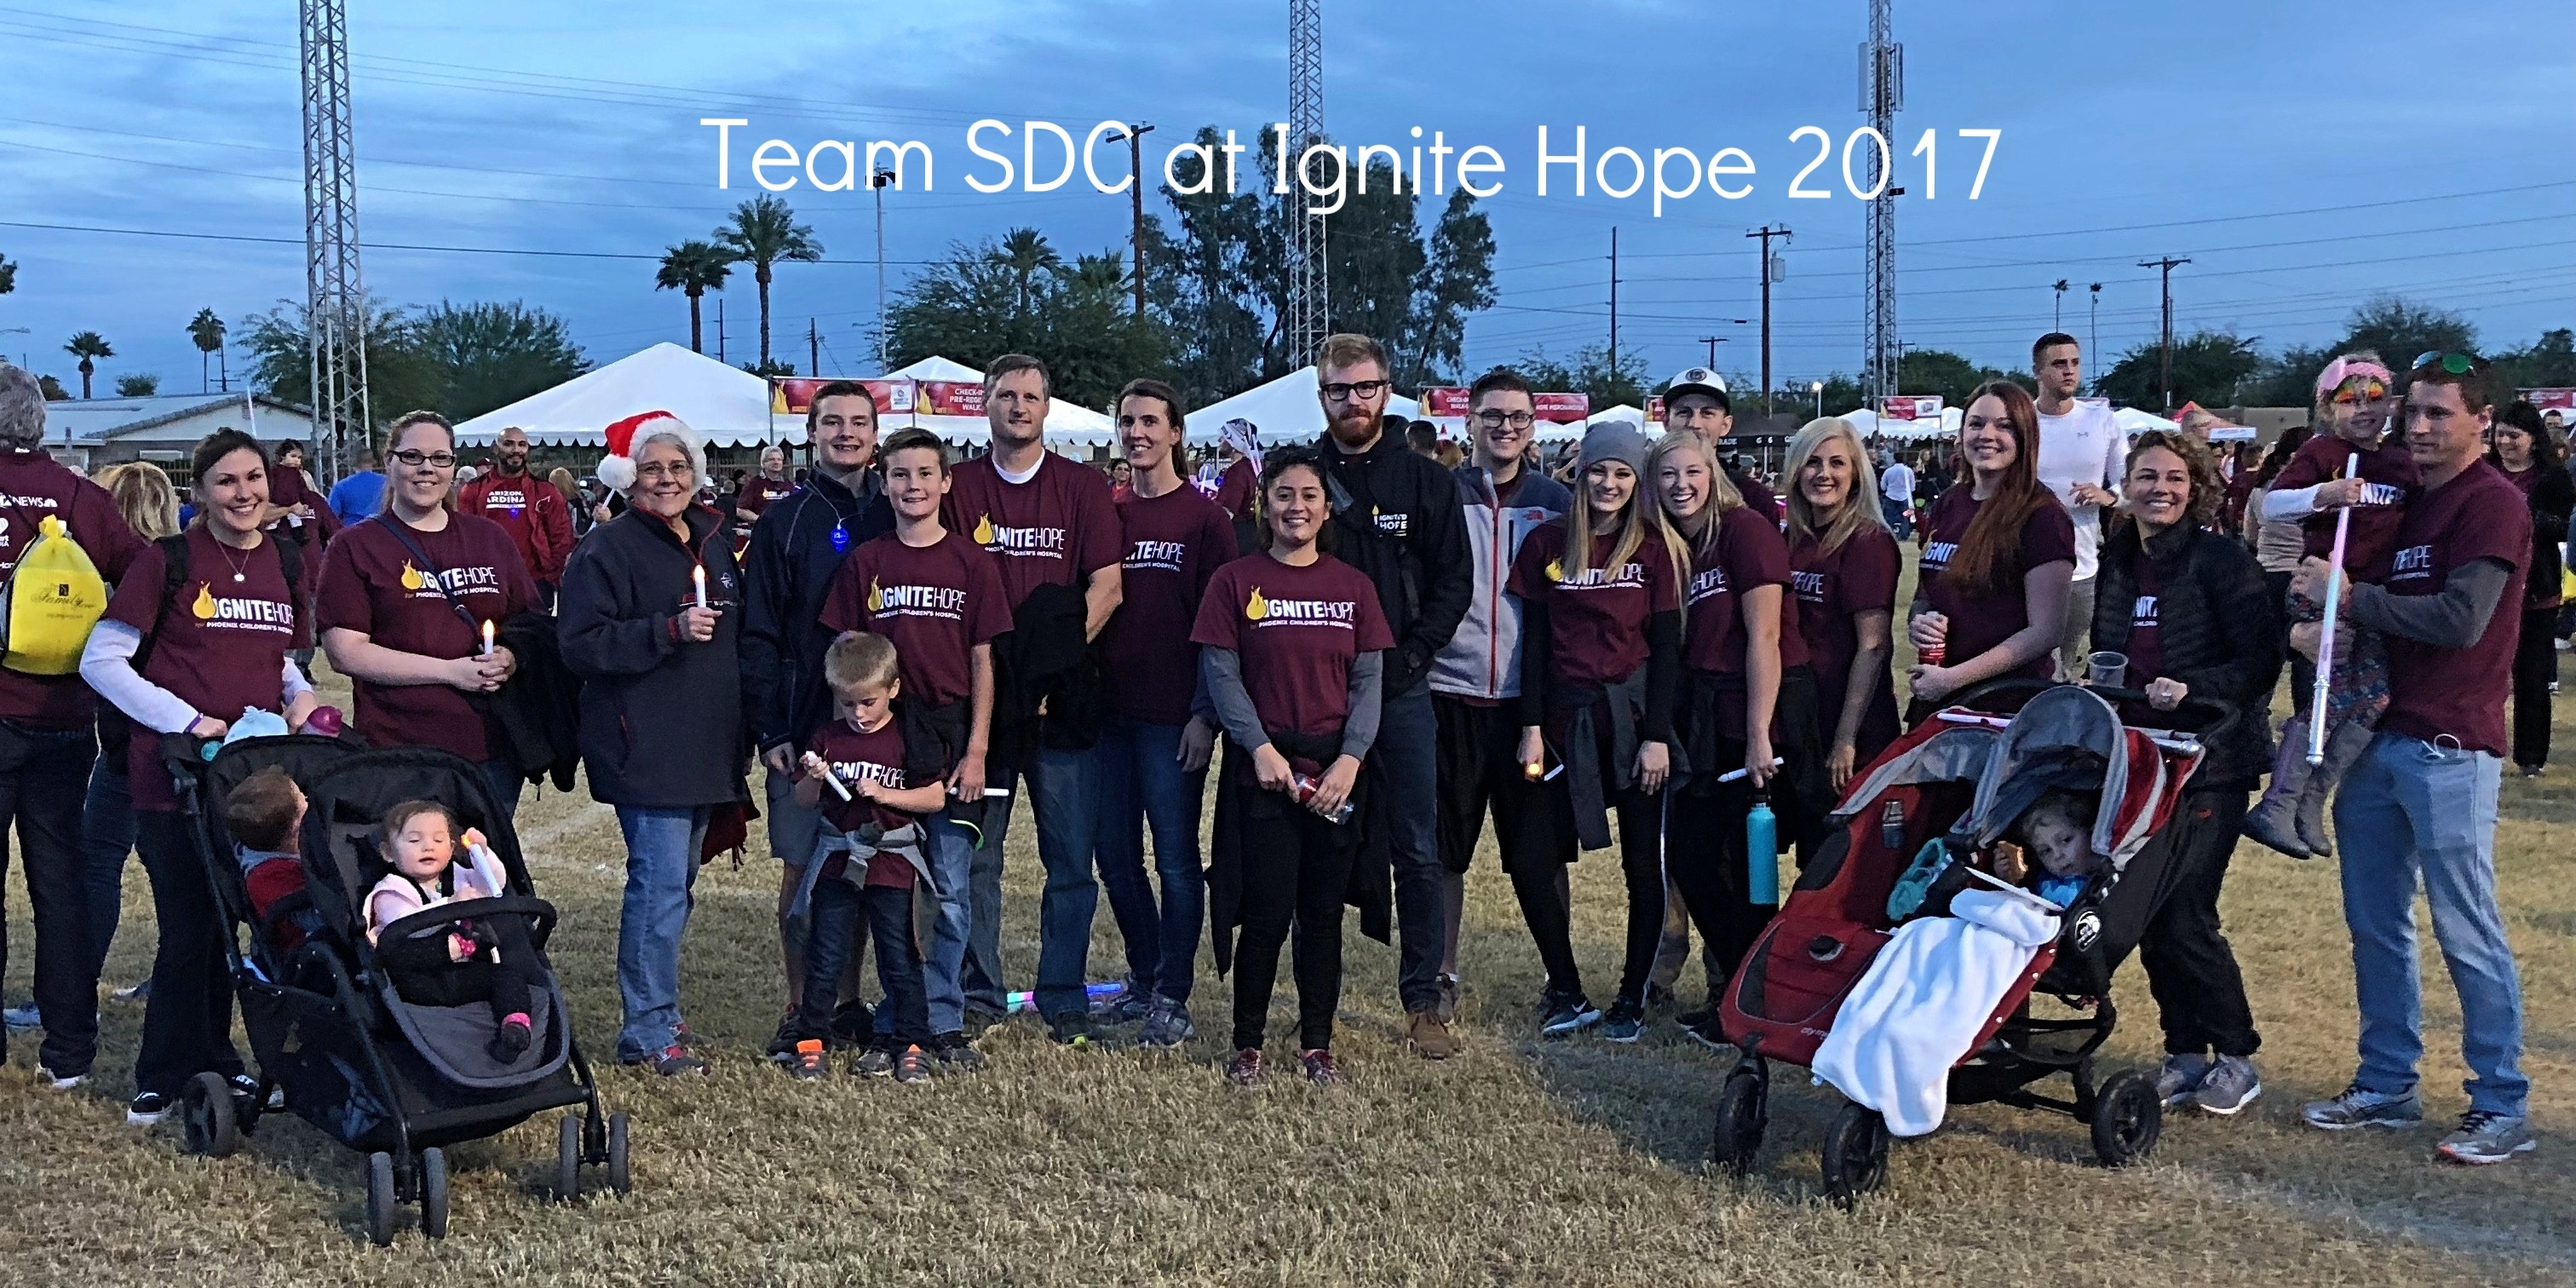 Ignite-Hope-2017-Edited-701464-edited.jpg